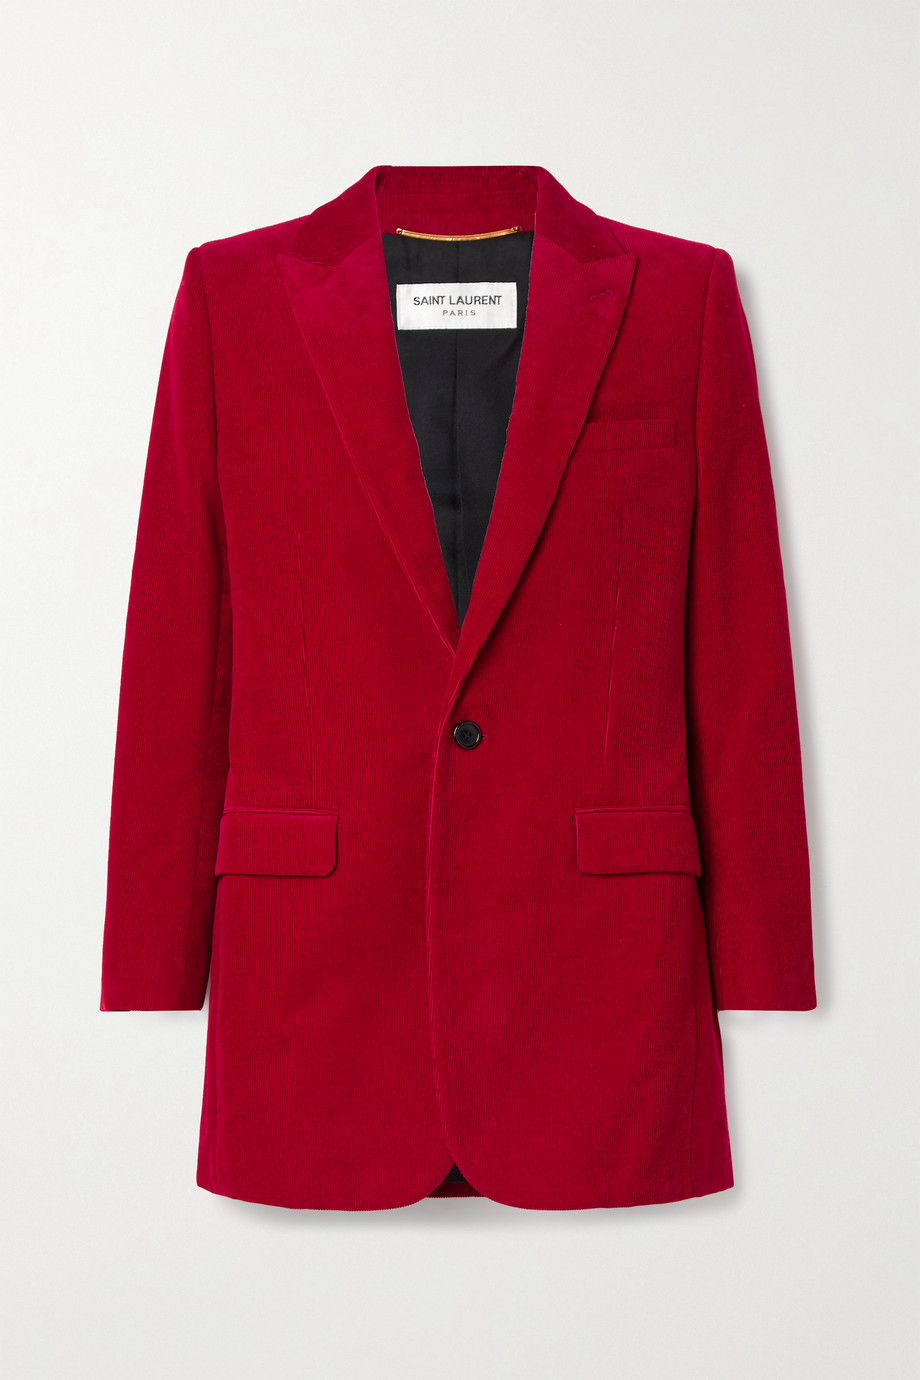 SAINT LAURENT Cotton-corduroy blazer